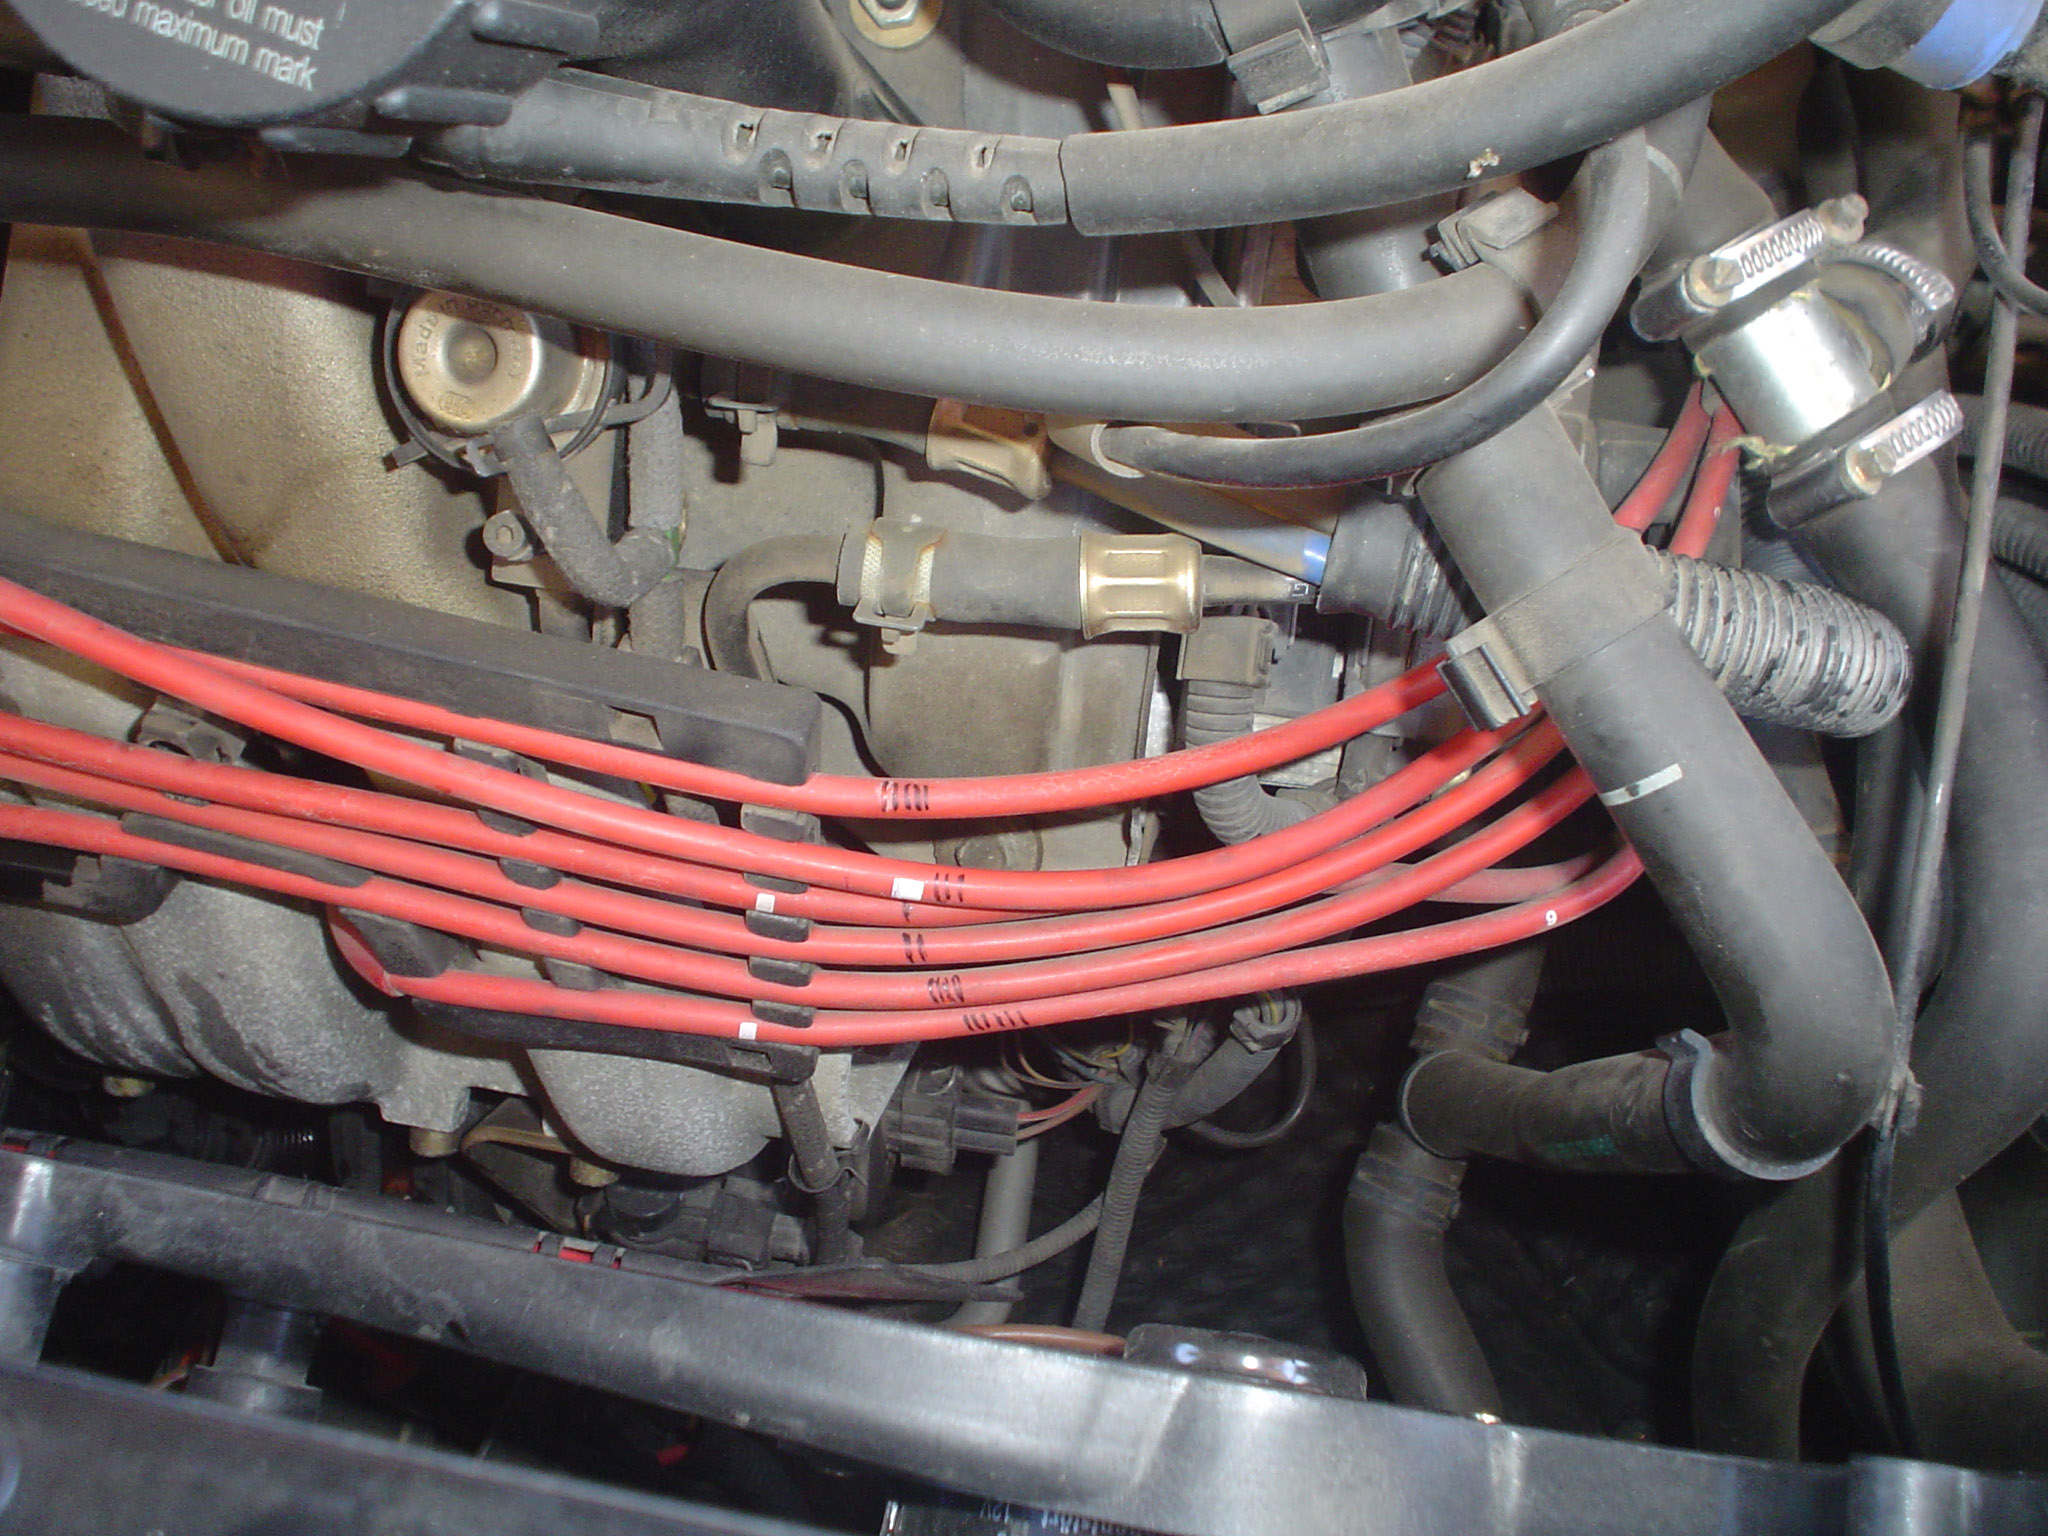 Spark Plugs Ignition Wires Vr6 Temp Switch Location Get Free Image About Wiring Diagram Changing